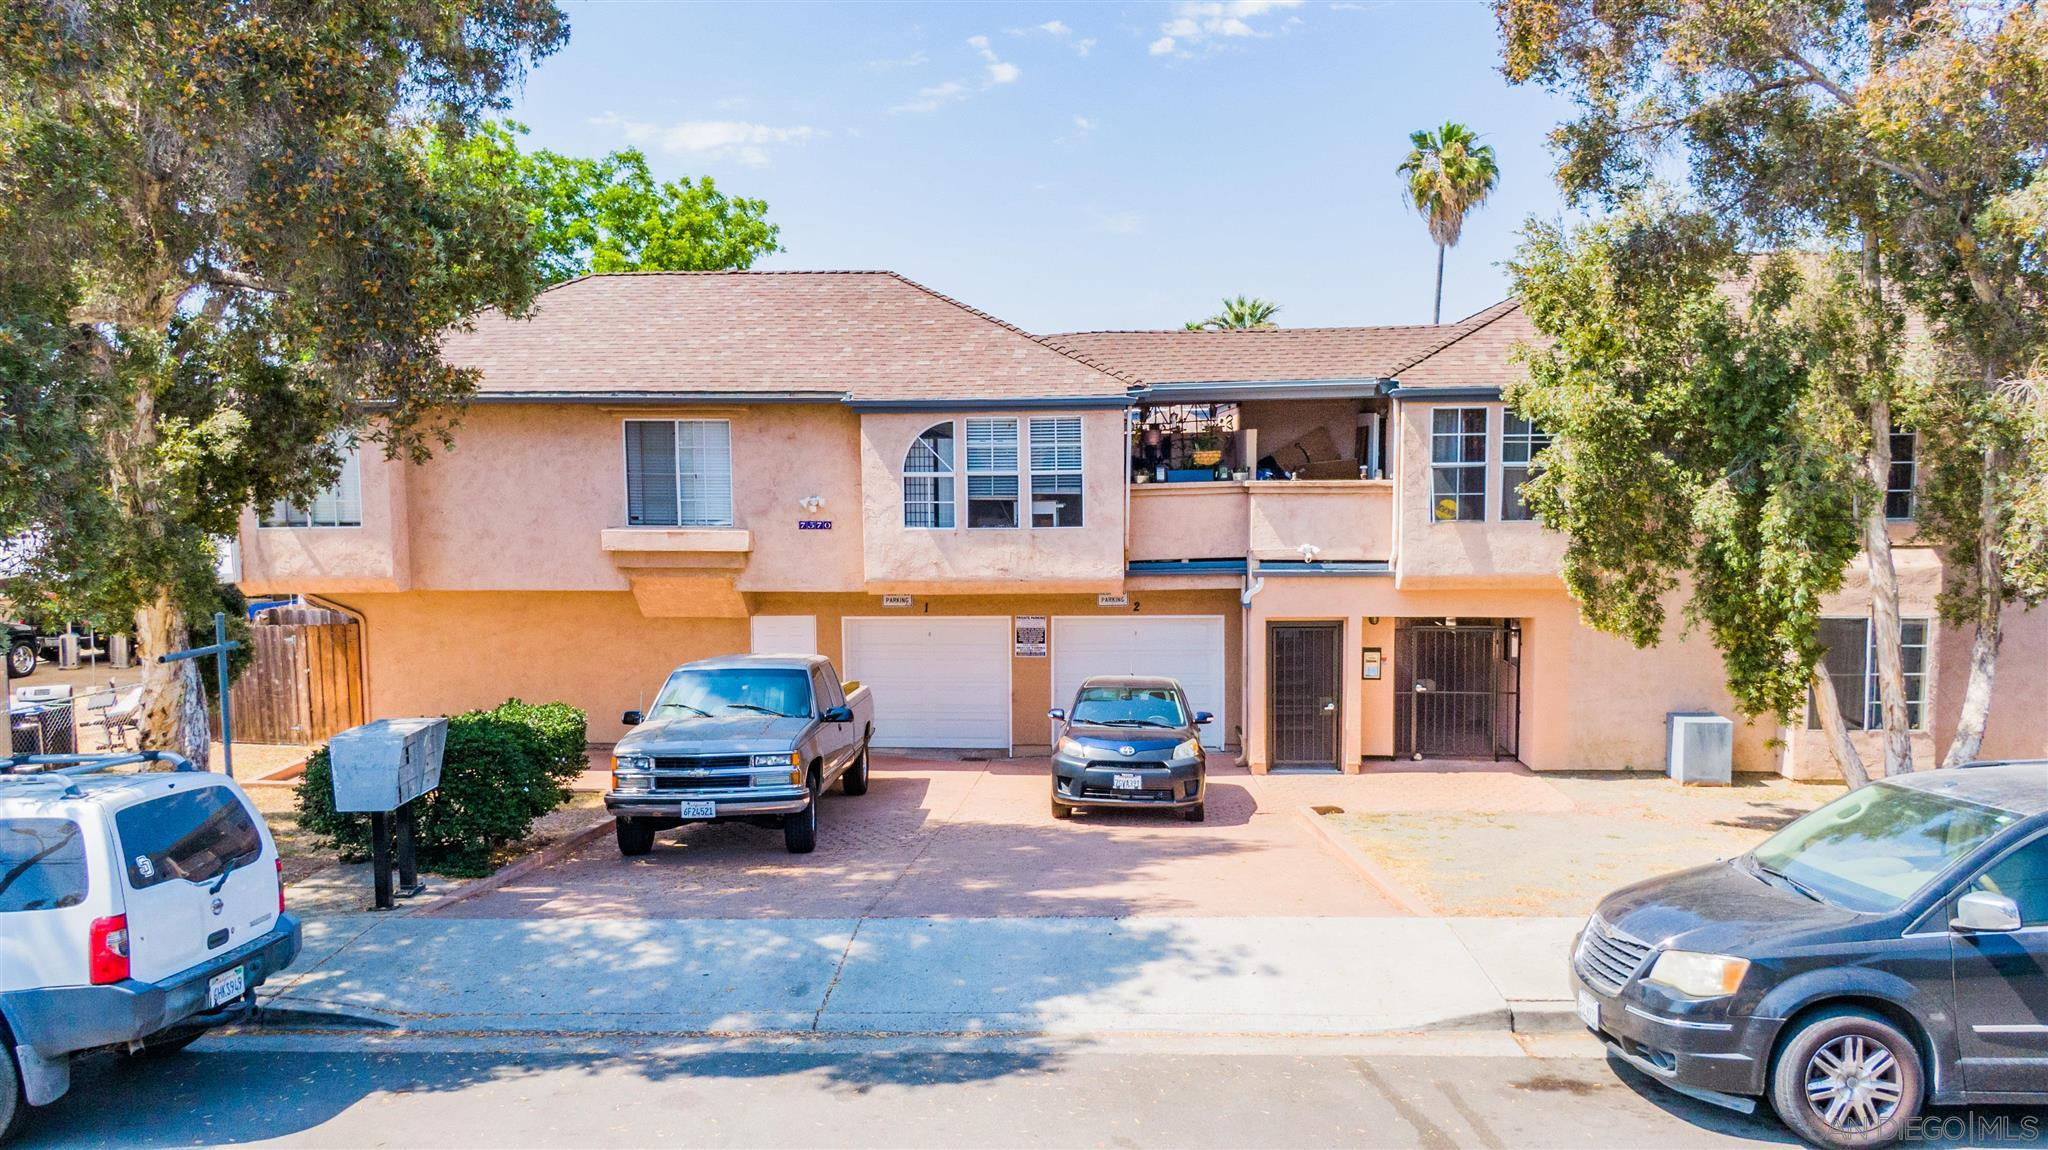 7570 Church Street is a large 17-unit apartment building in Lemon Grove featuring 11 spacious 2 bed / 2 bath units approximately 820 square feet and 6 large 3 bed / 2 bath units averaging 1,020 square feet. The two-story 14,654 square foot structure built in 1987 sits on a 27,007 square foot lot with 6 garages, 25 parking spaces, and 8 storage spaces. Several units feature large patios. There is an option to assume the current Chase financing. This investment provides future upside and is located on a quiet residential street with easy access to shopping, business, and freeways.